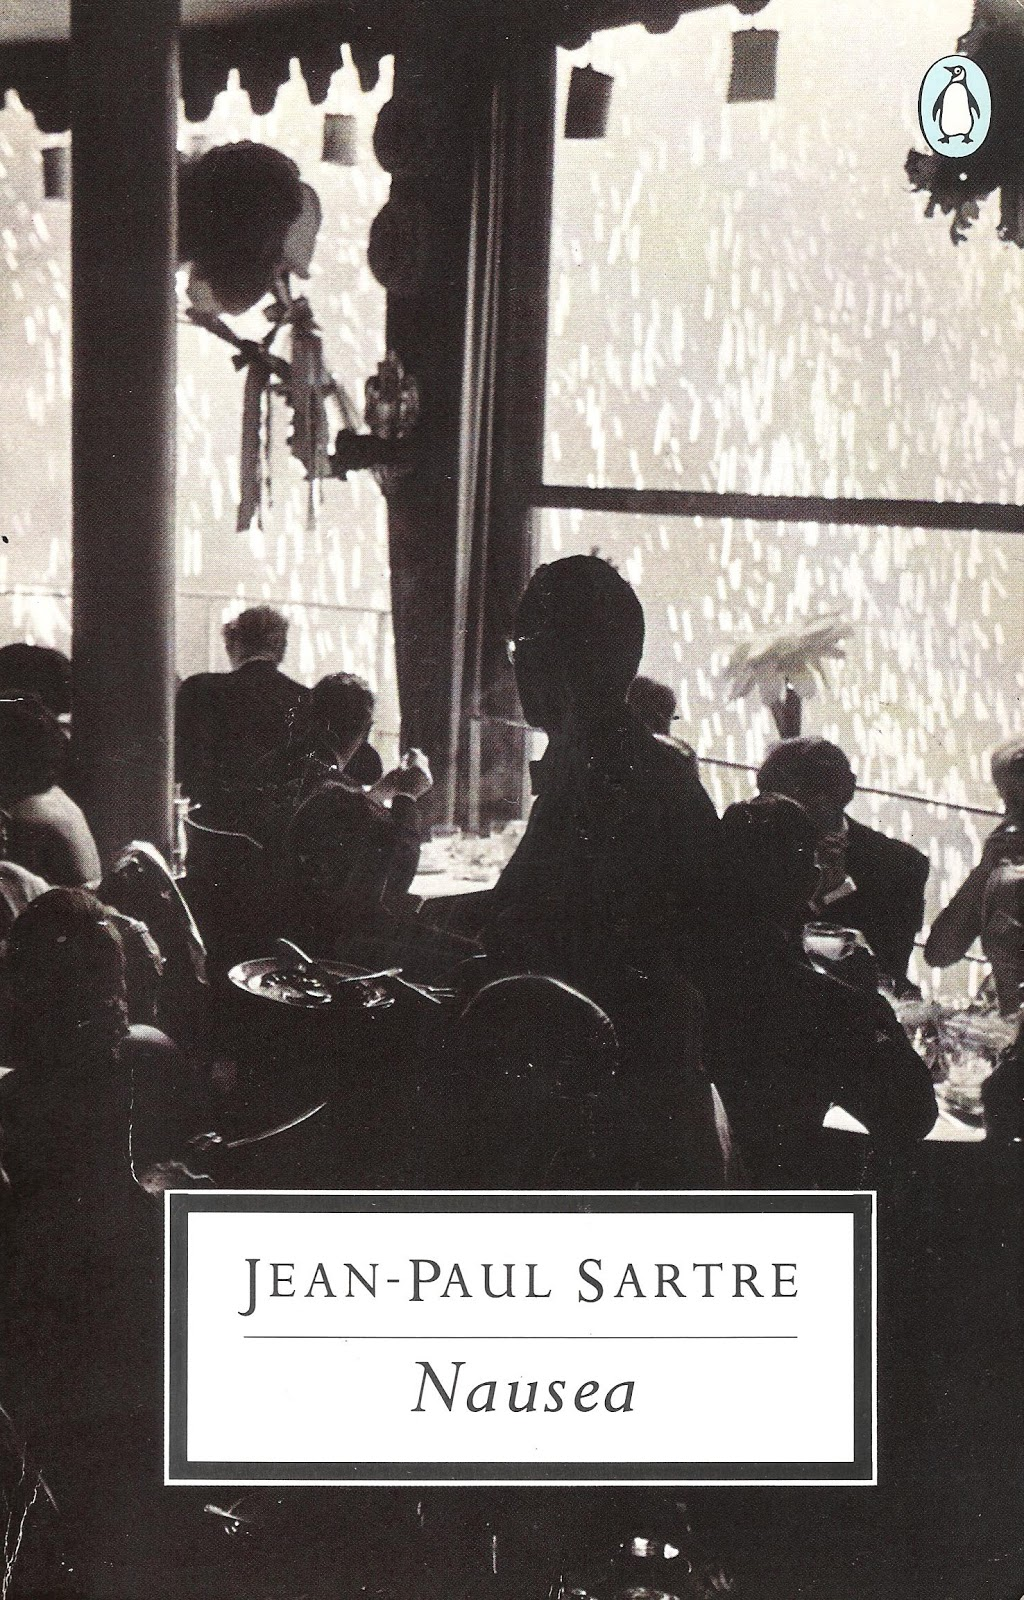 how sartre cured existential angst a jazz record